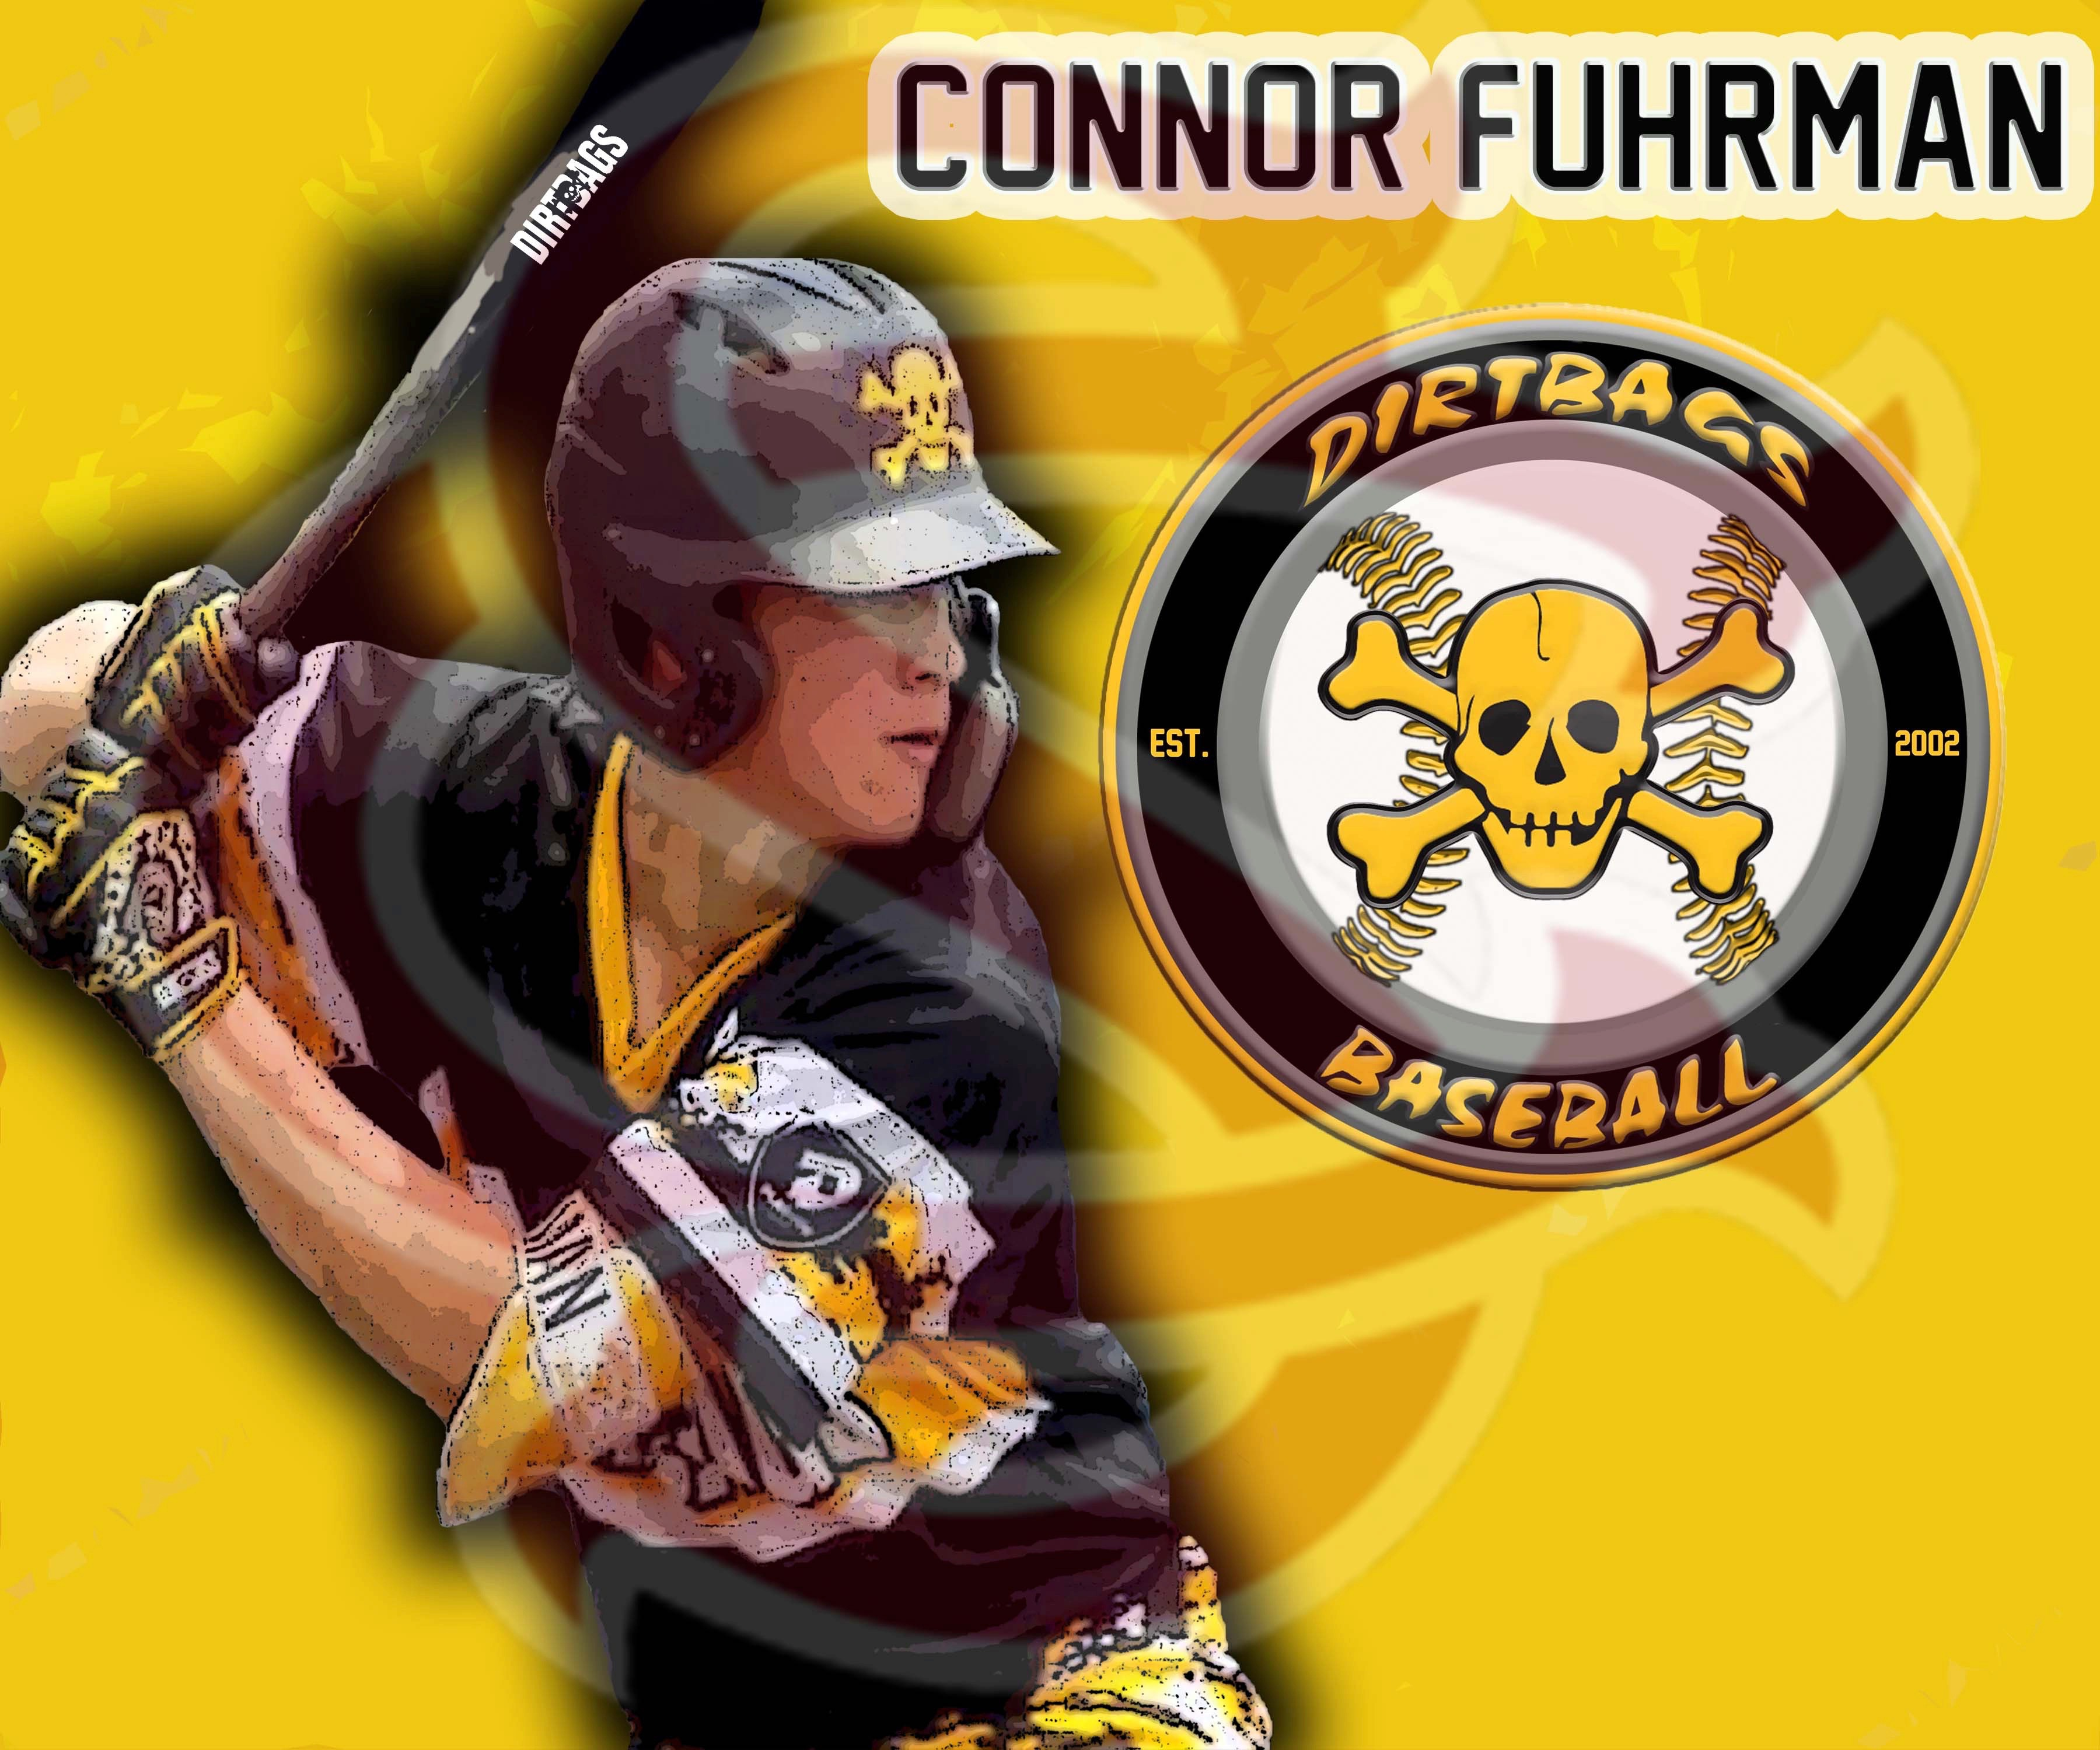 Testimonial Tuesday: Connor Fuhrman